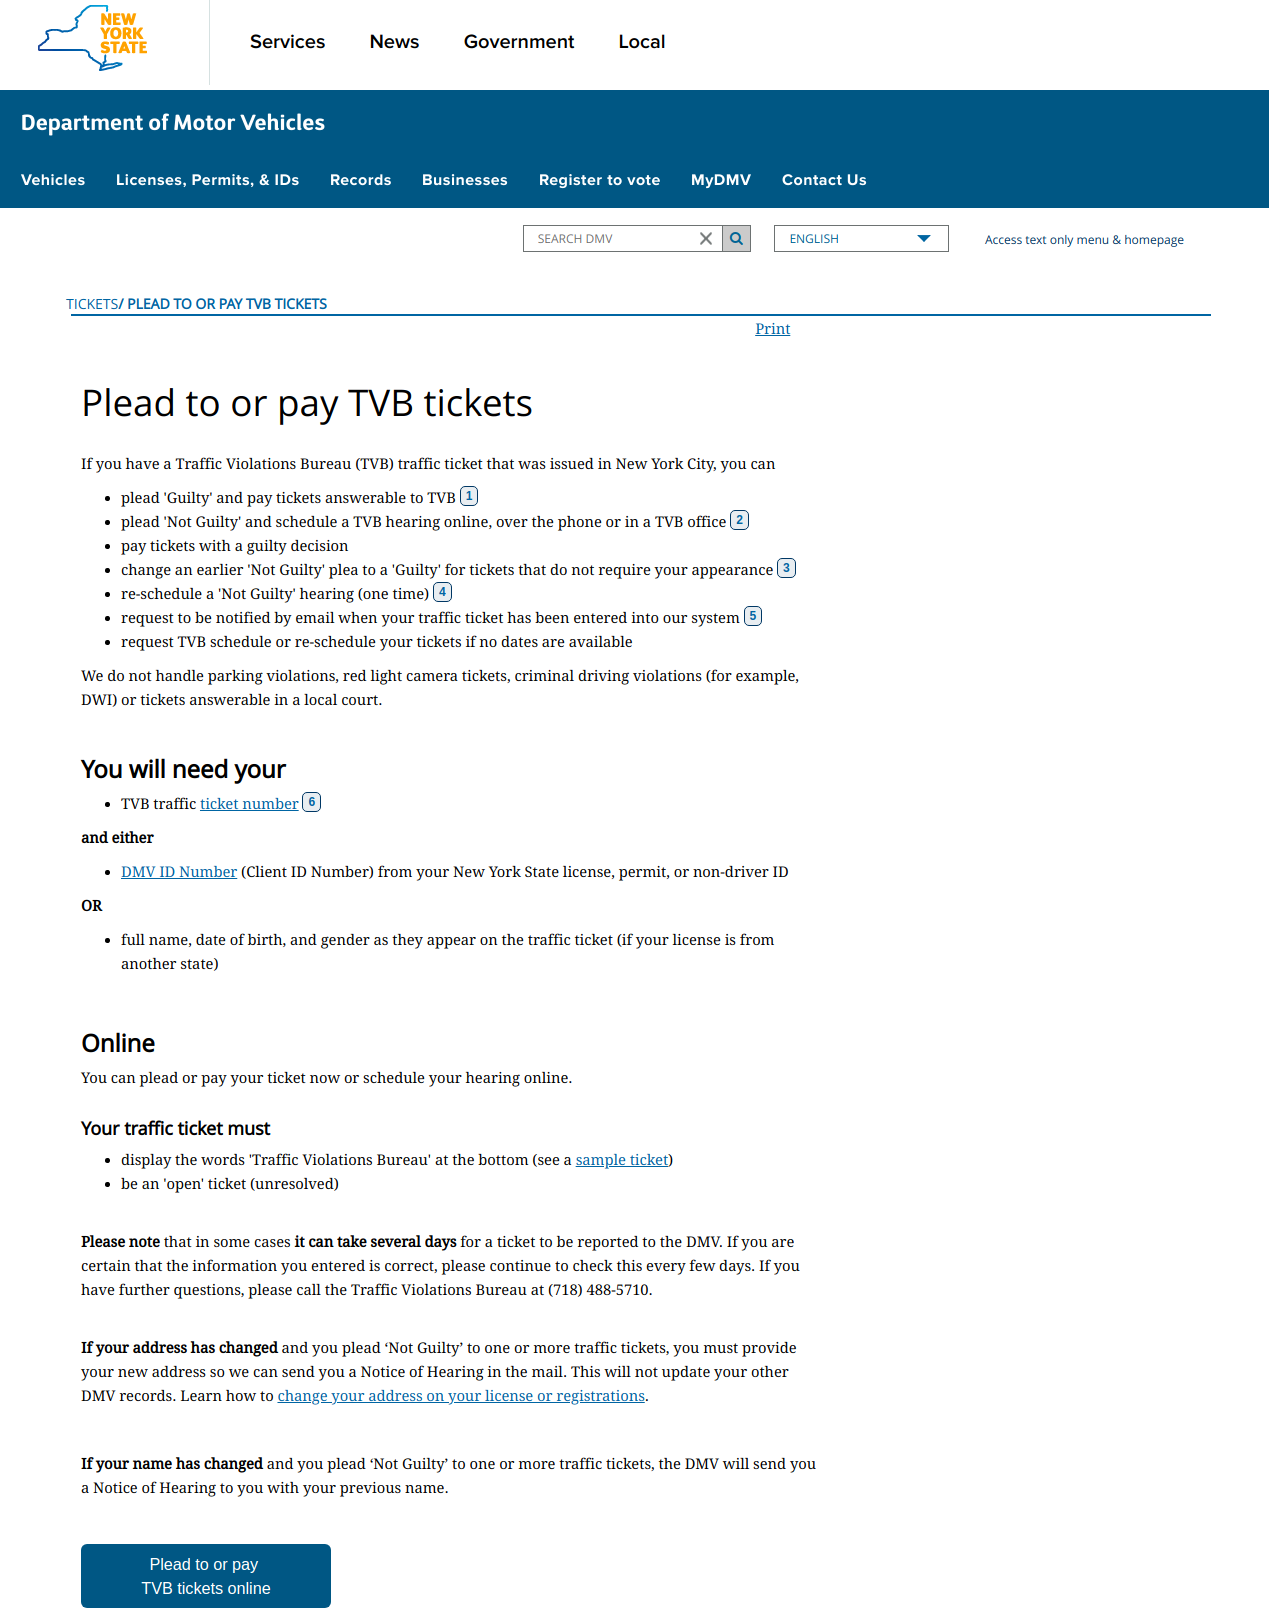 Plead to or pay TVB tickets